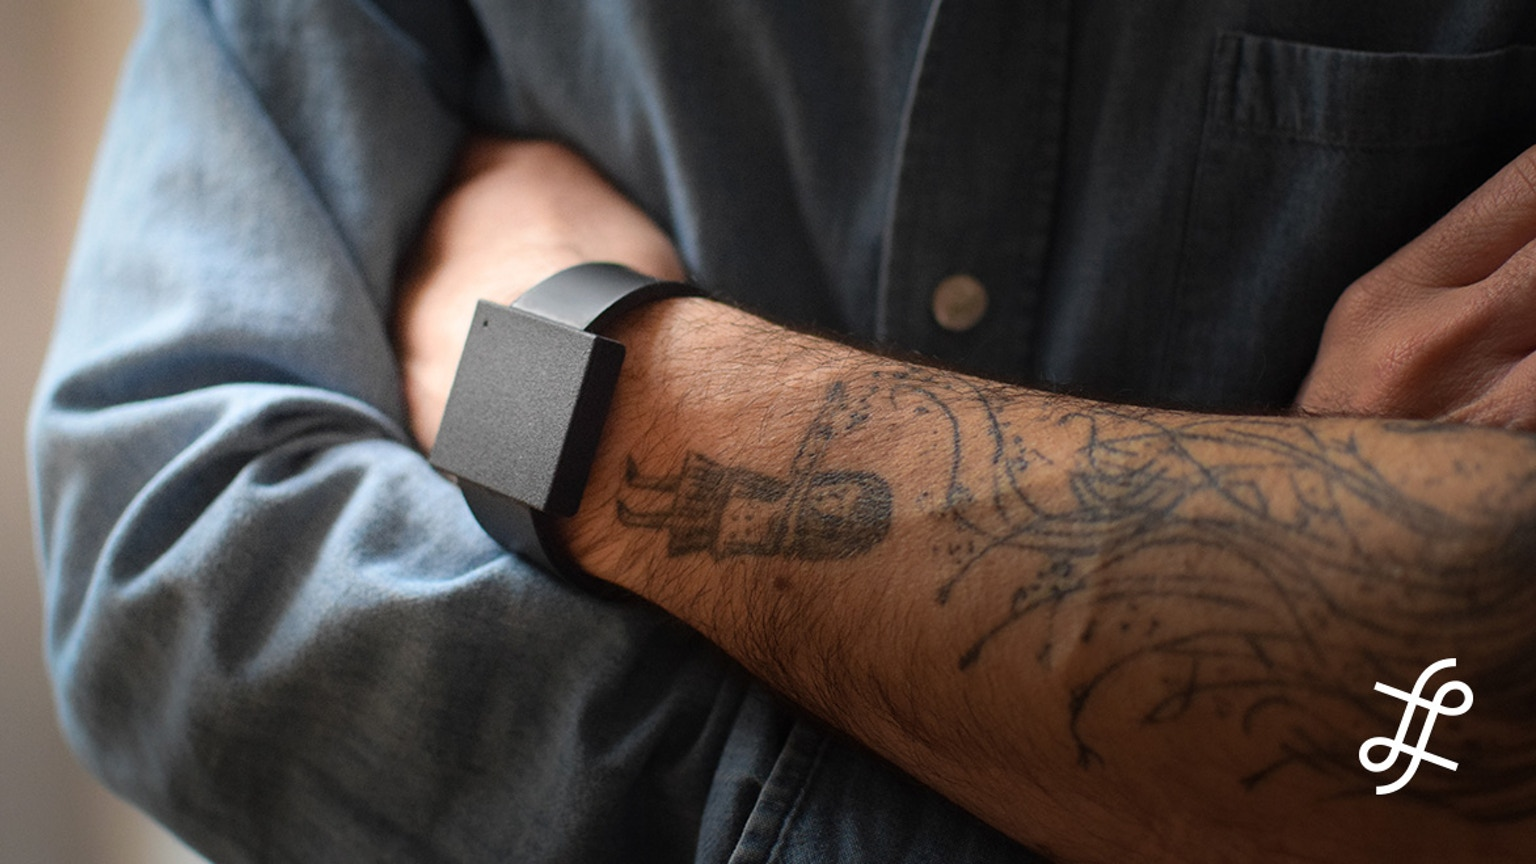 The Basslet aims to recreate the visceral experience of live shows on the go by delivering low... [+] frequencies to users' bodies, with the form factor of a smartwatch. (Photo courtesy of Lofelt)